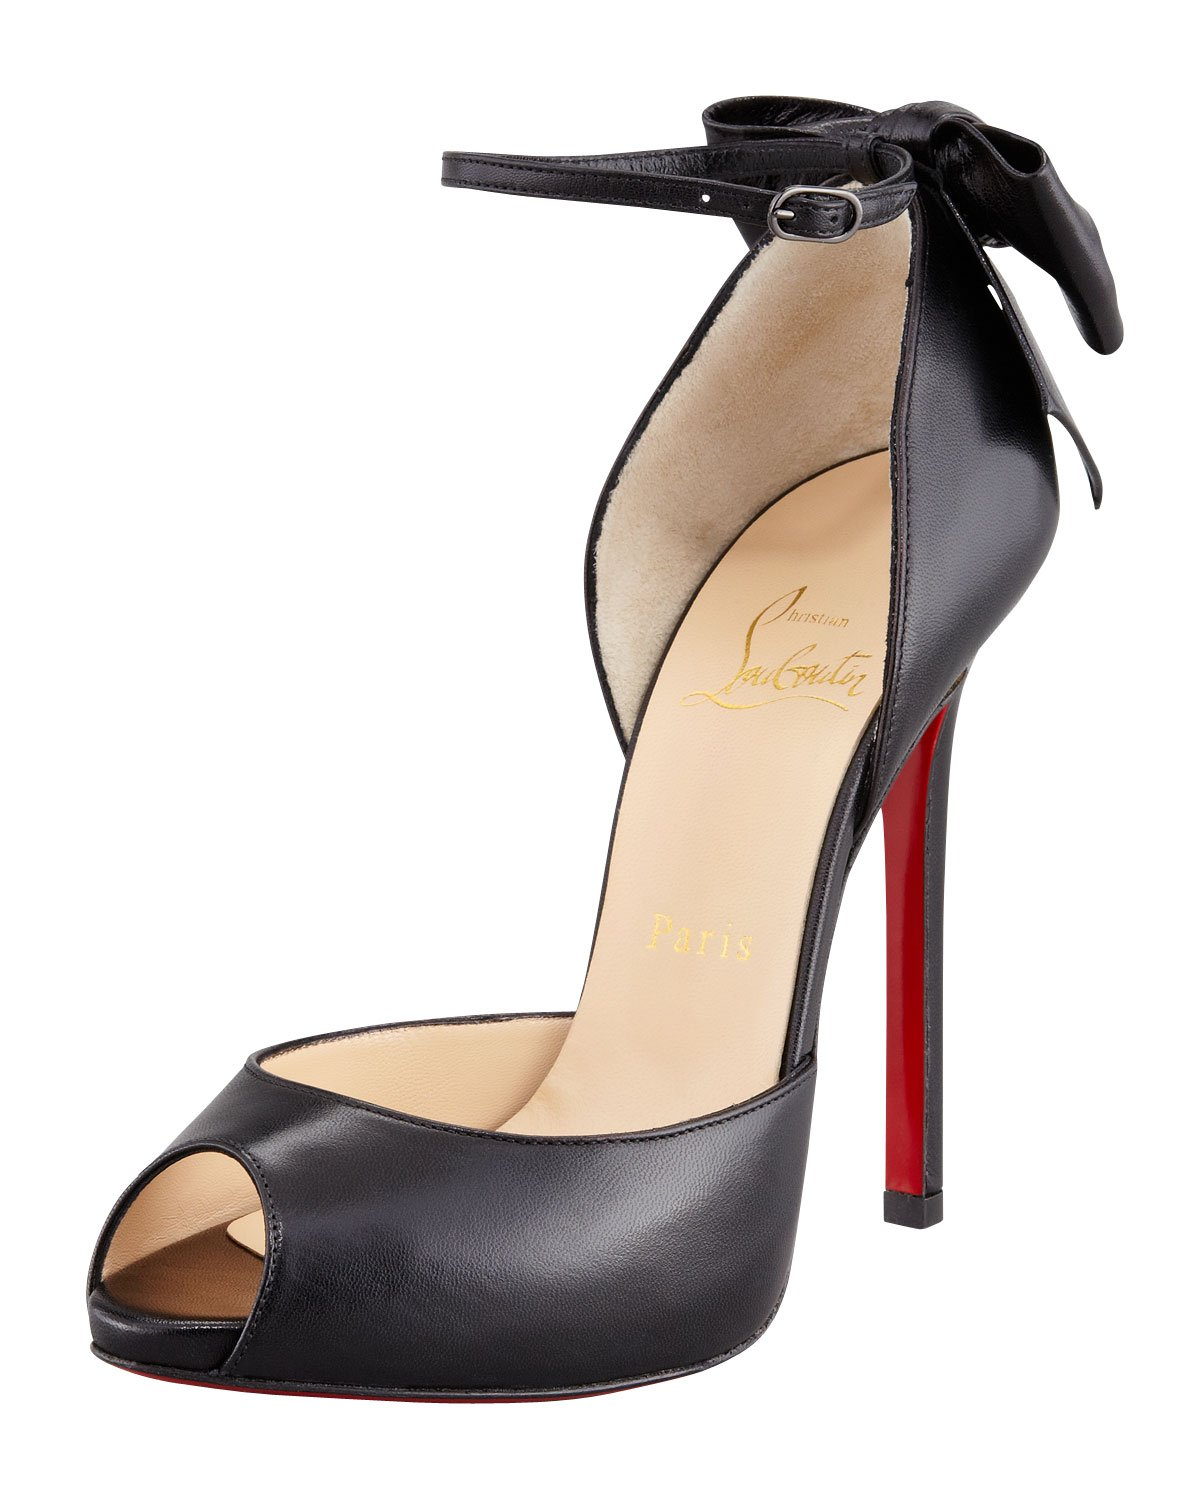 2247ed592c90 Christian louboutin Dos Noeud Backbow Dorsay Red Sole Pump Black in Black